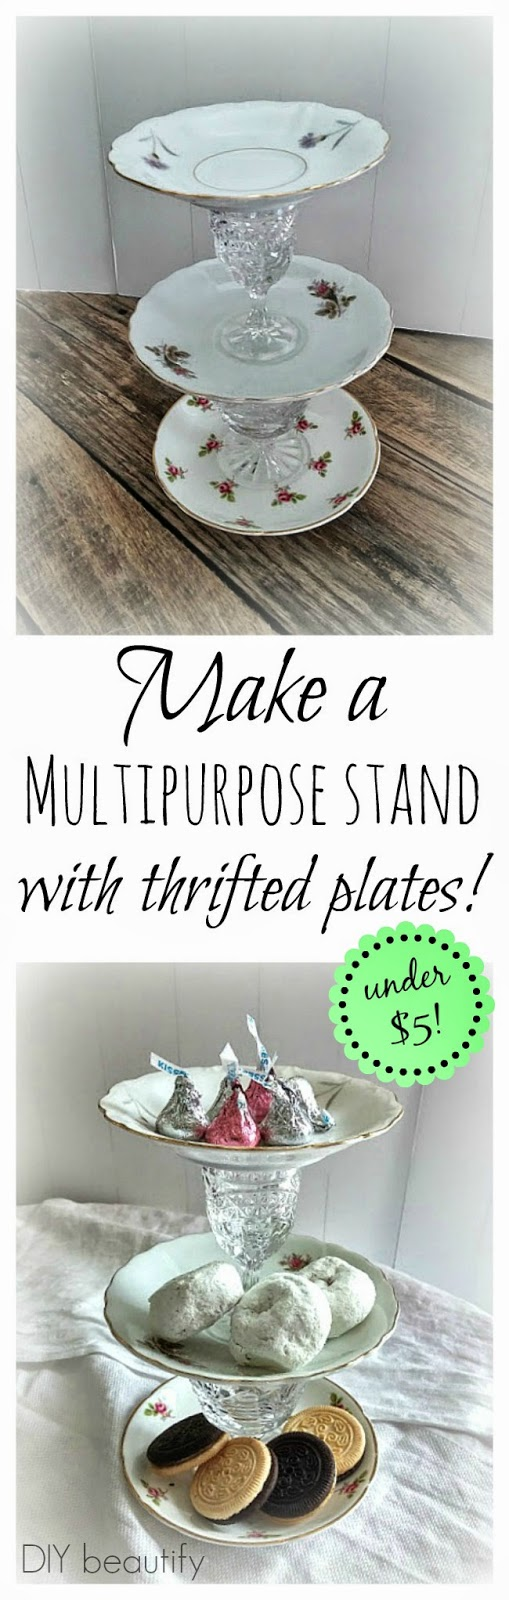 Make a tiered plate stand with thrifted plates and crystal stemware